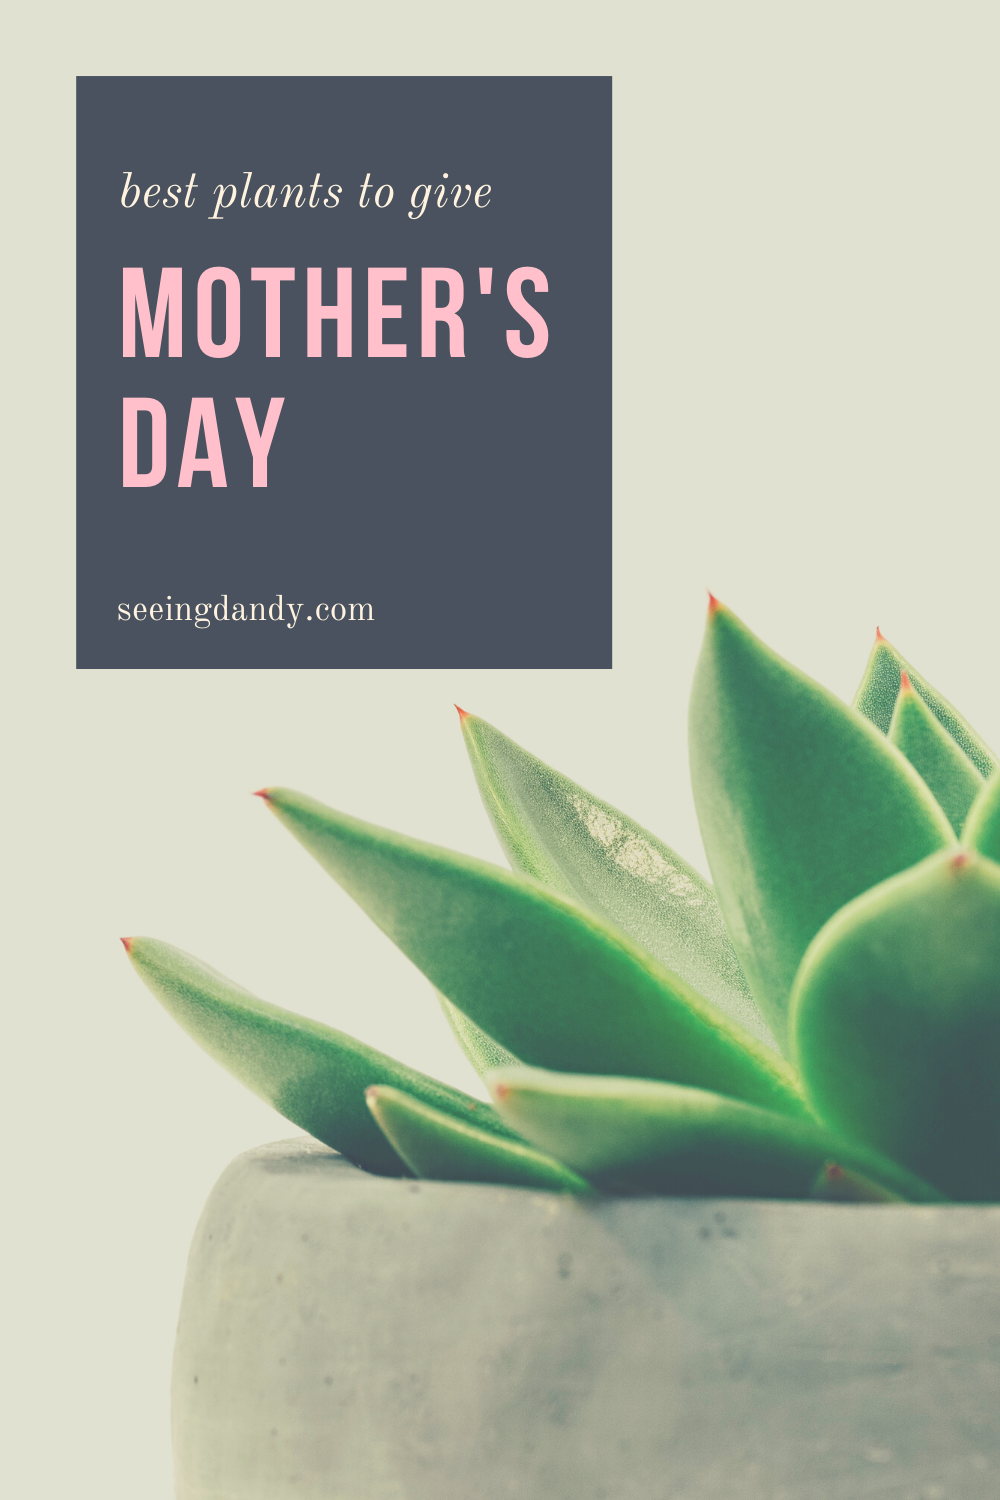 best plants for Mother's Day